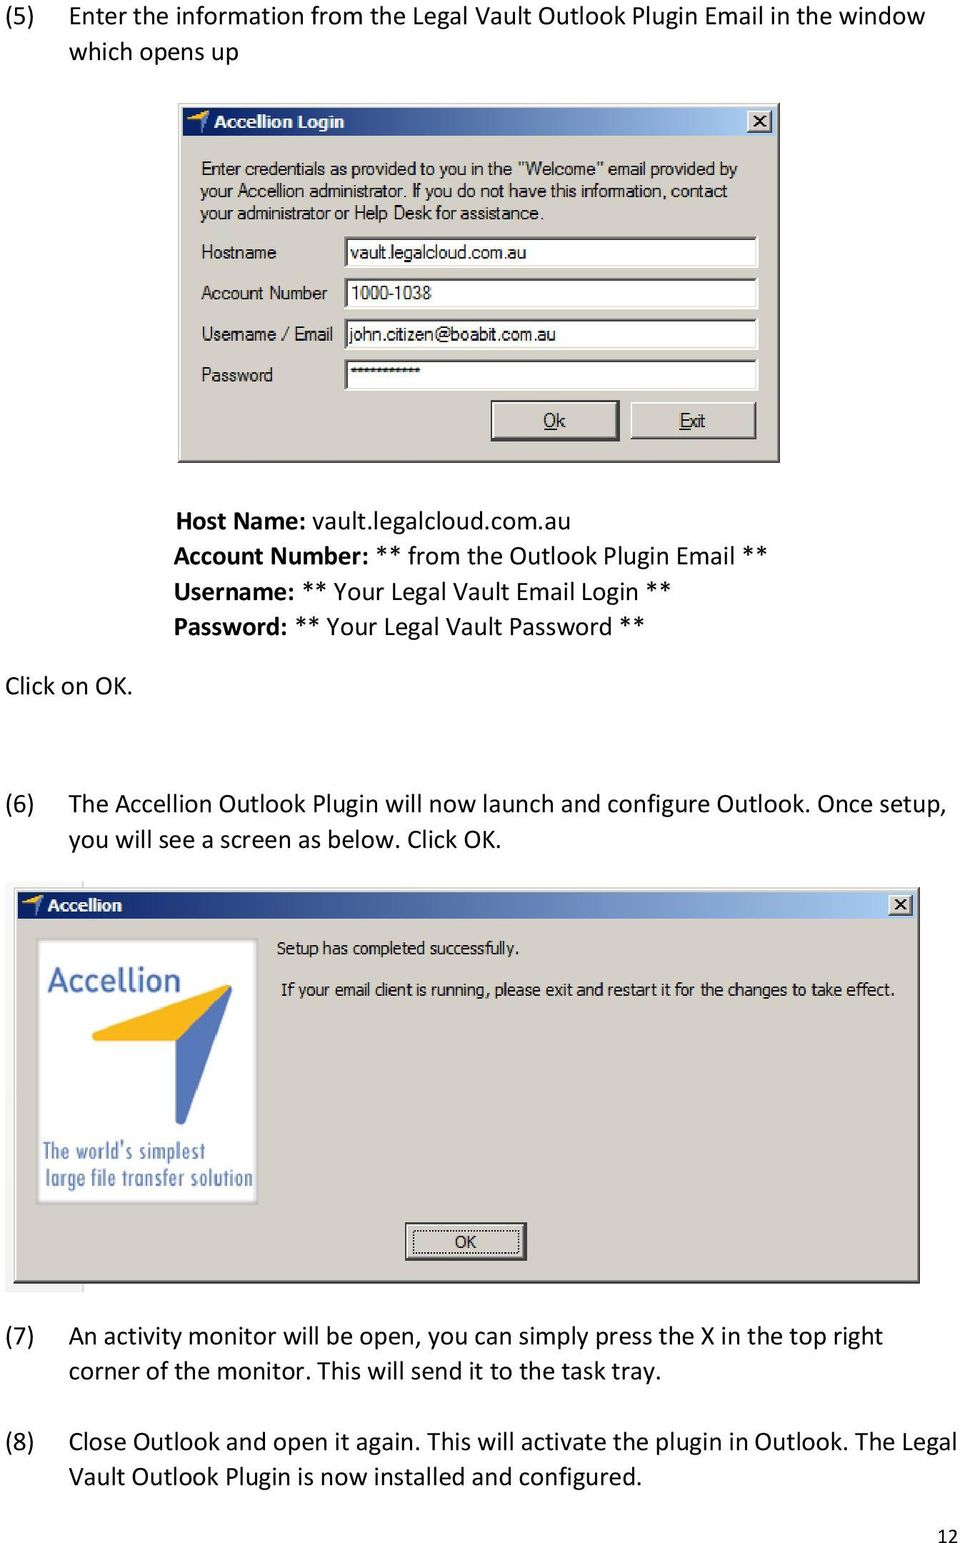 Plugin will now launch and configure Outlook. Once setup, you will see a screen as below. Click OK.